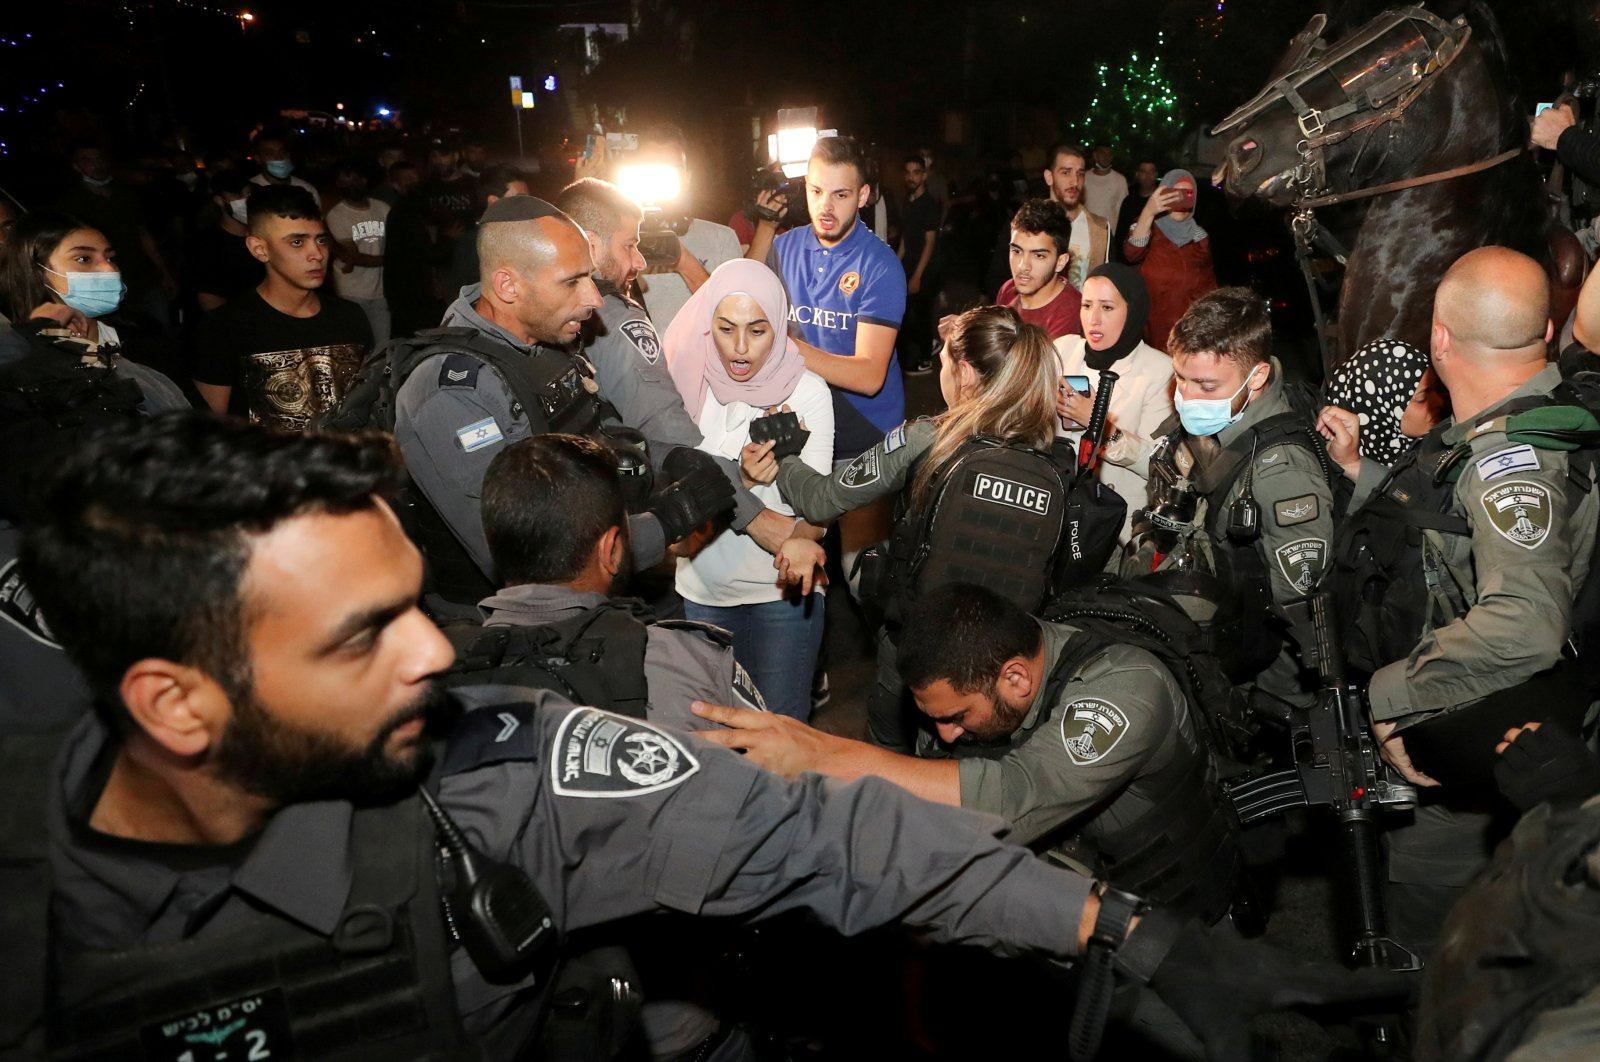 Prominent Palestinian activist Muna al-Kurd reacts during scuffles with Israeli police amid ongoing tension ahead of an upcoming court hearing in an Israeli-Palestinian land-ownership dispute in the Sheikh Jarrah neighborhood of East Jerusalem, occupied Palestine, May 4, 2021. (Reuters Photo)